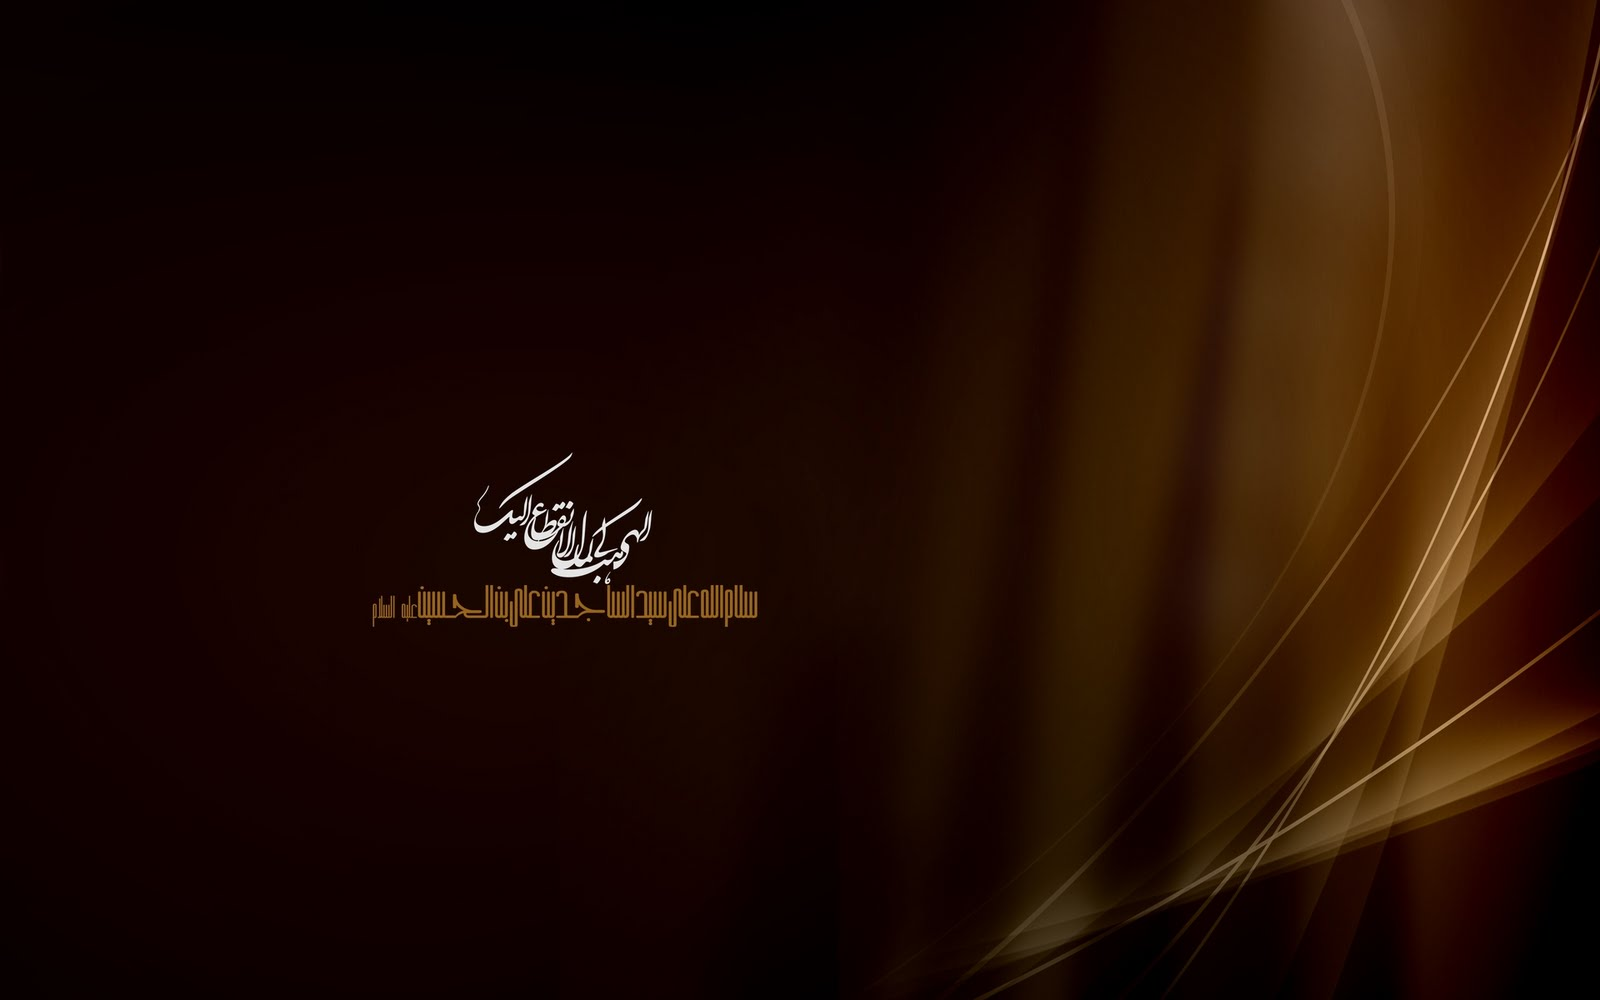 Islamic Wallpapers 2010 New 1600x1000